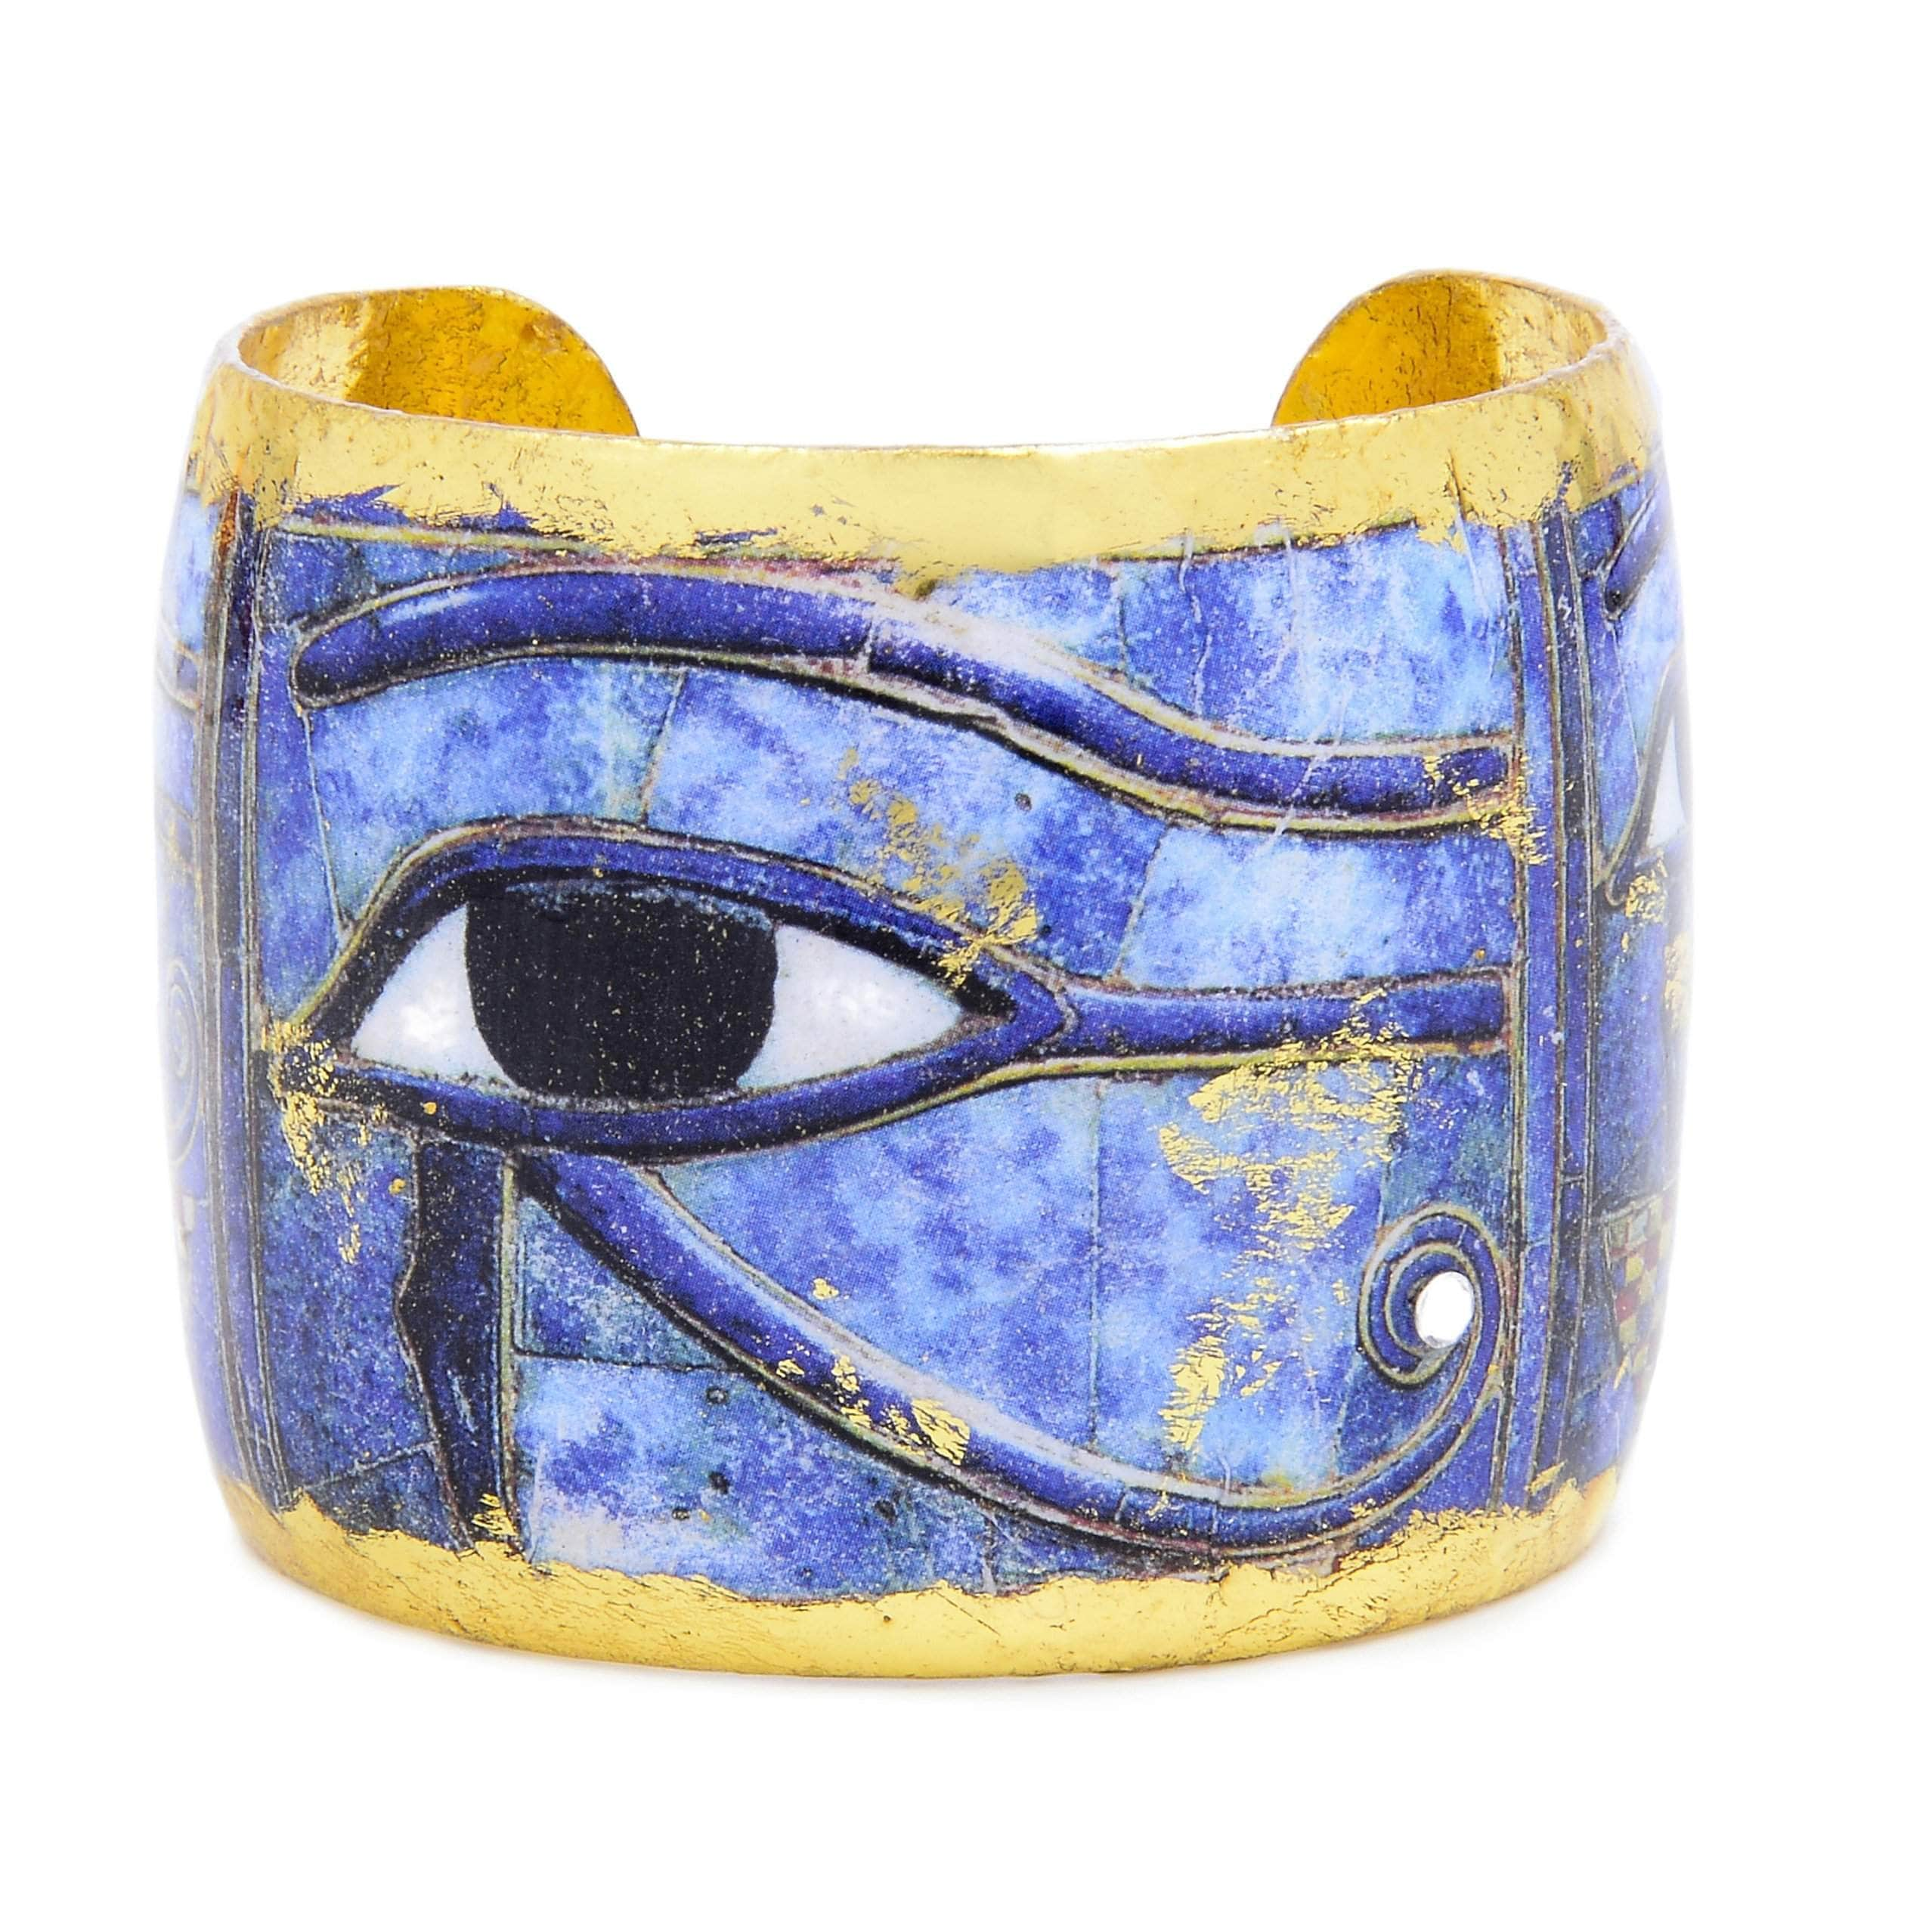 "Eye of Horus 2"" Gold Cuff - AC166-Evocateur-Renee Taylor Gallery"